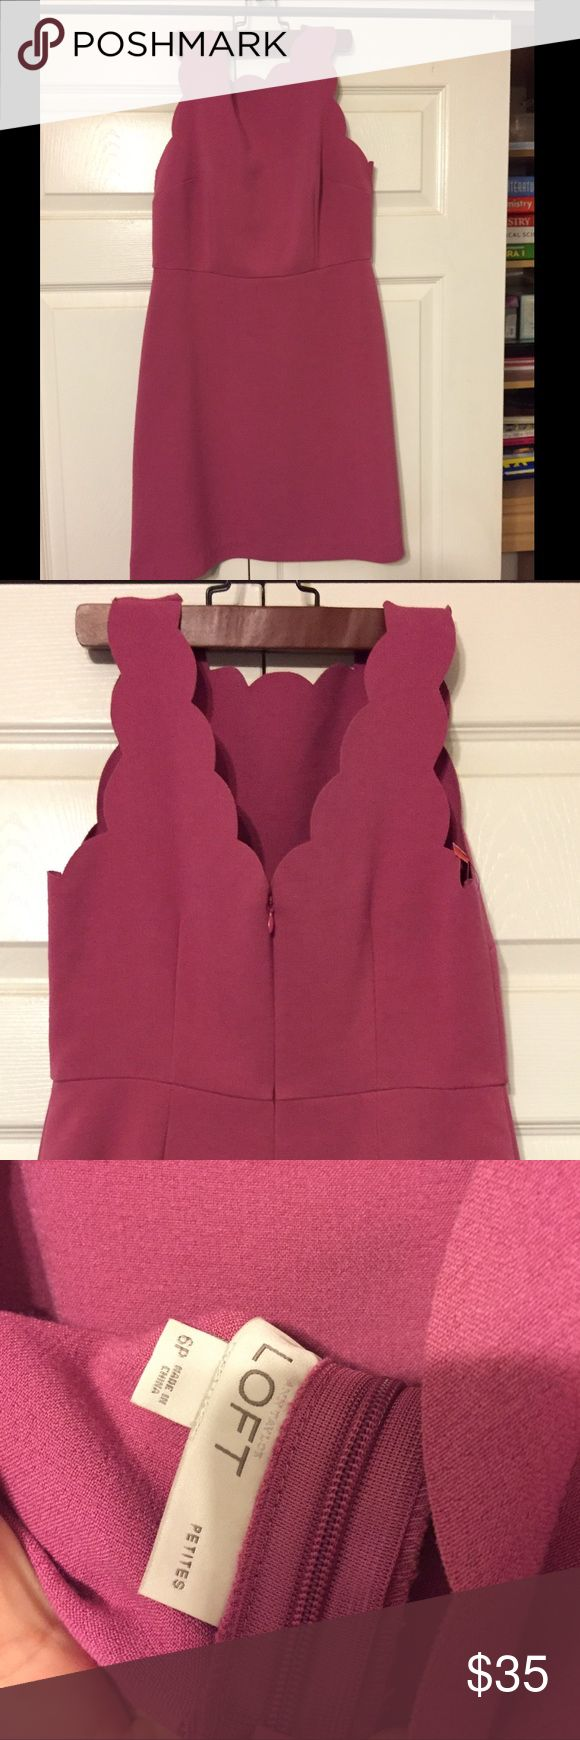 The Loft dress with scalloped detail! Beautiful Loft dress, soft with a little stretch, soft magenta color The Loft Dresses Mini